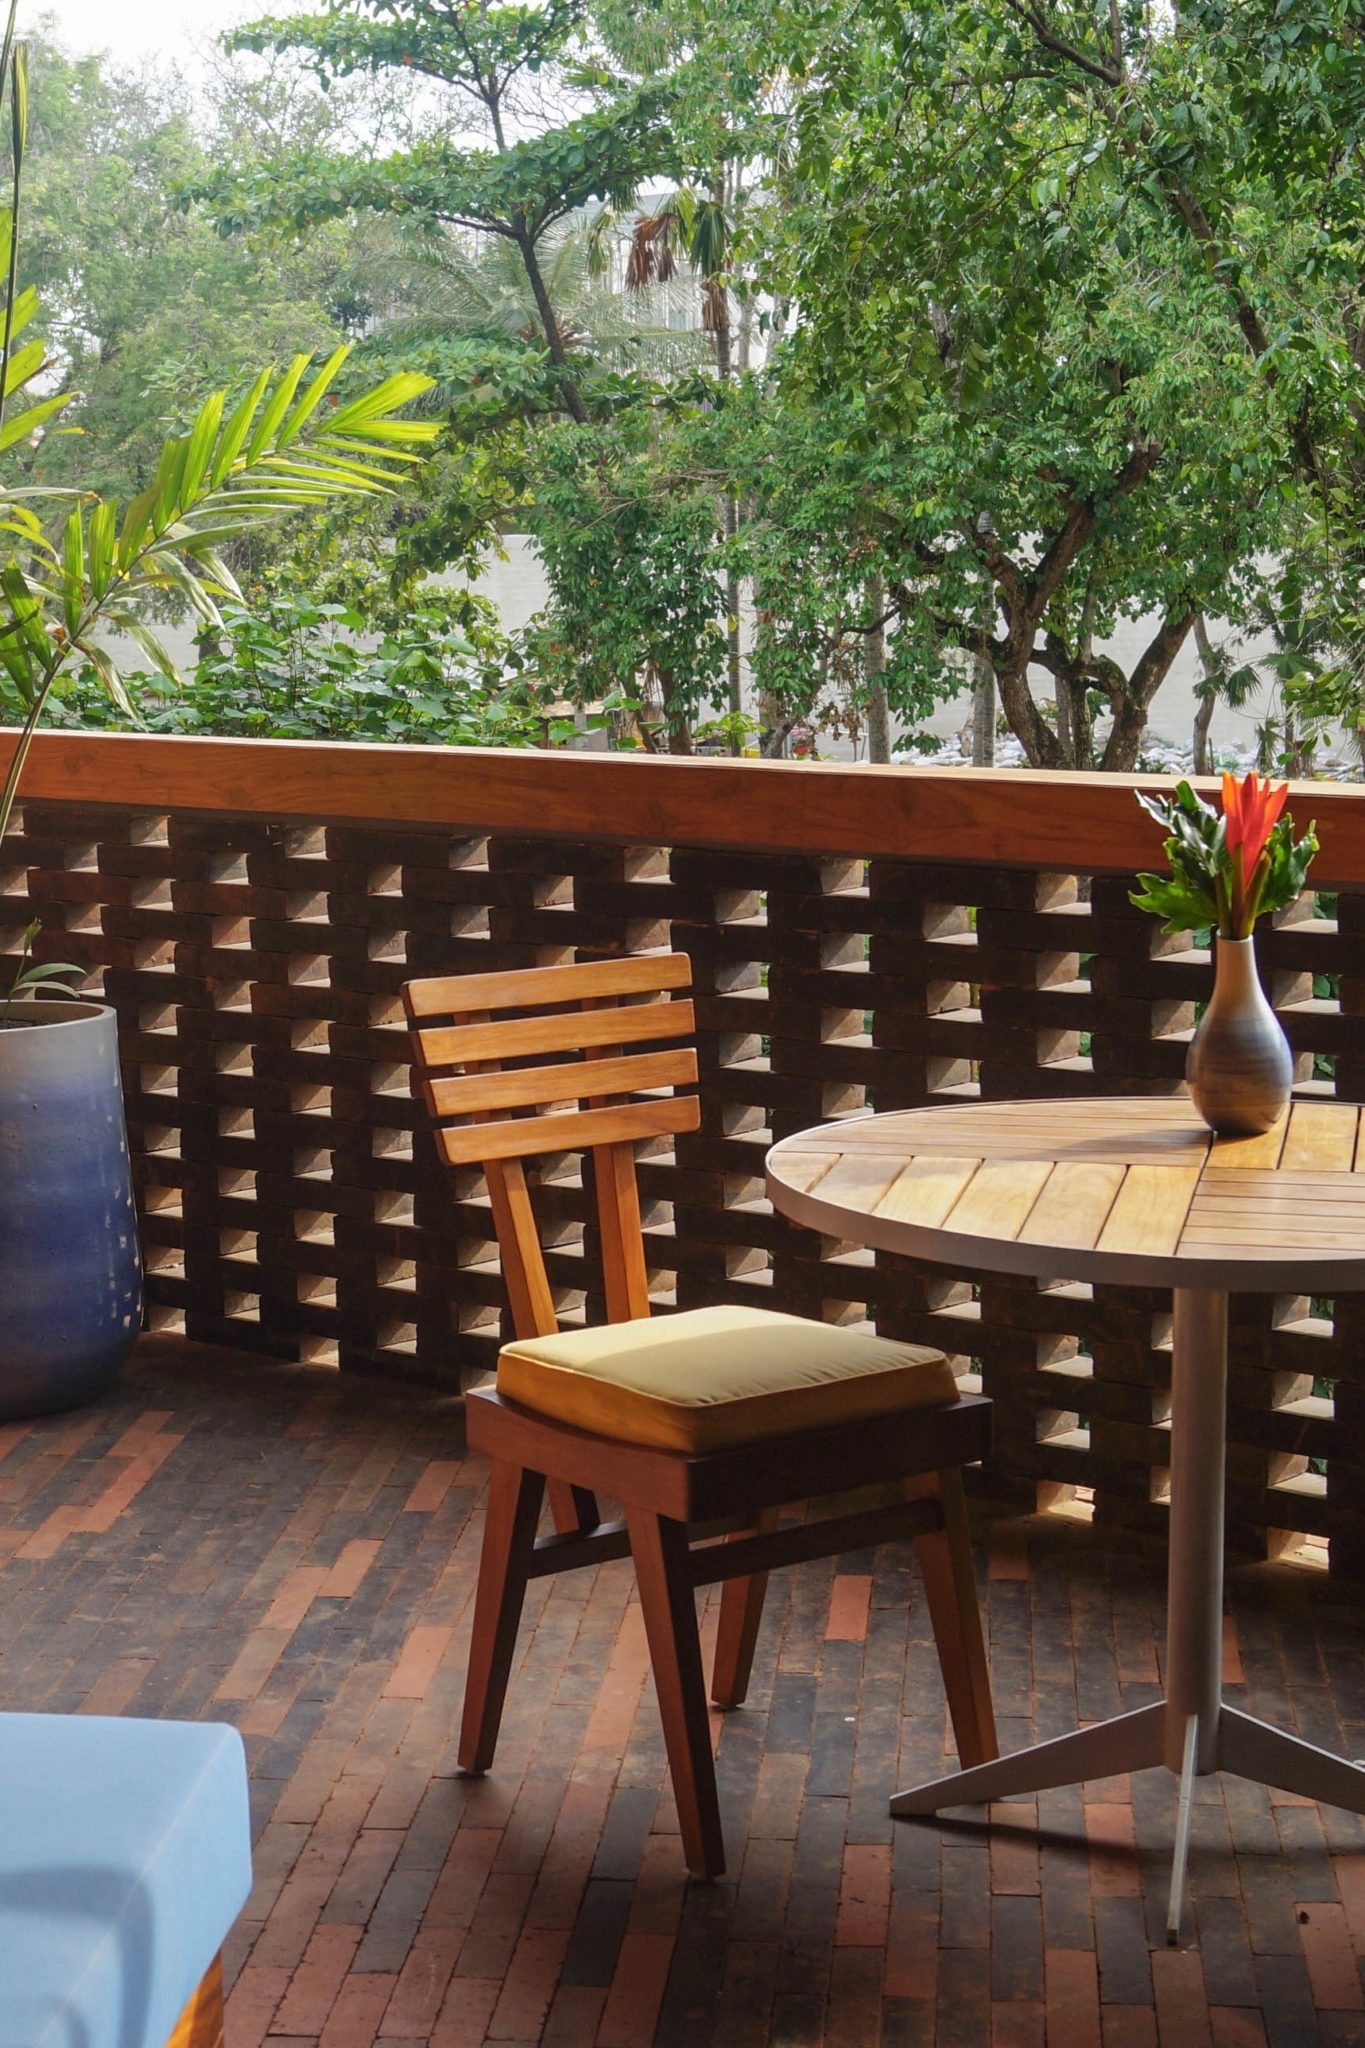 Katamama Hotel Bali: The terrace is furnished with a couch and a table.